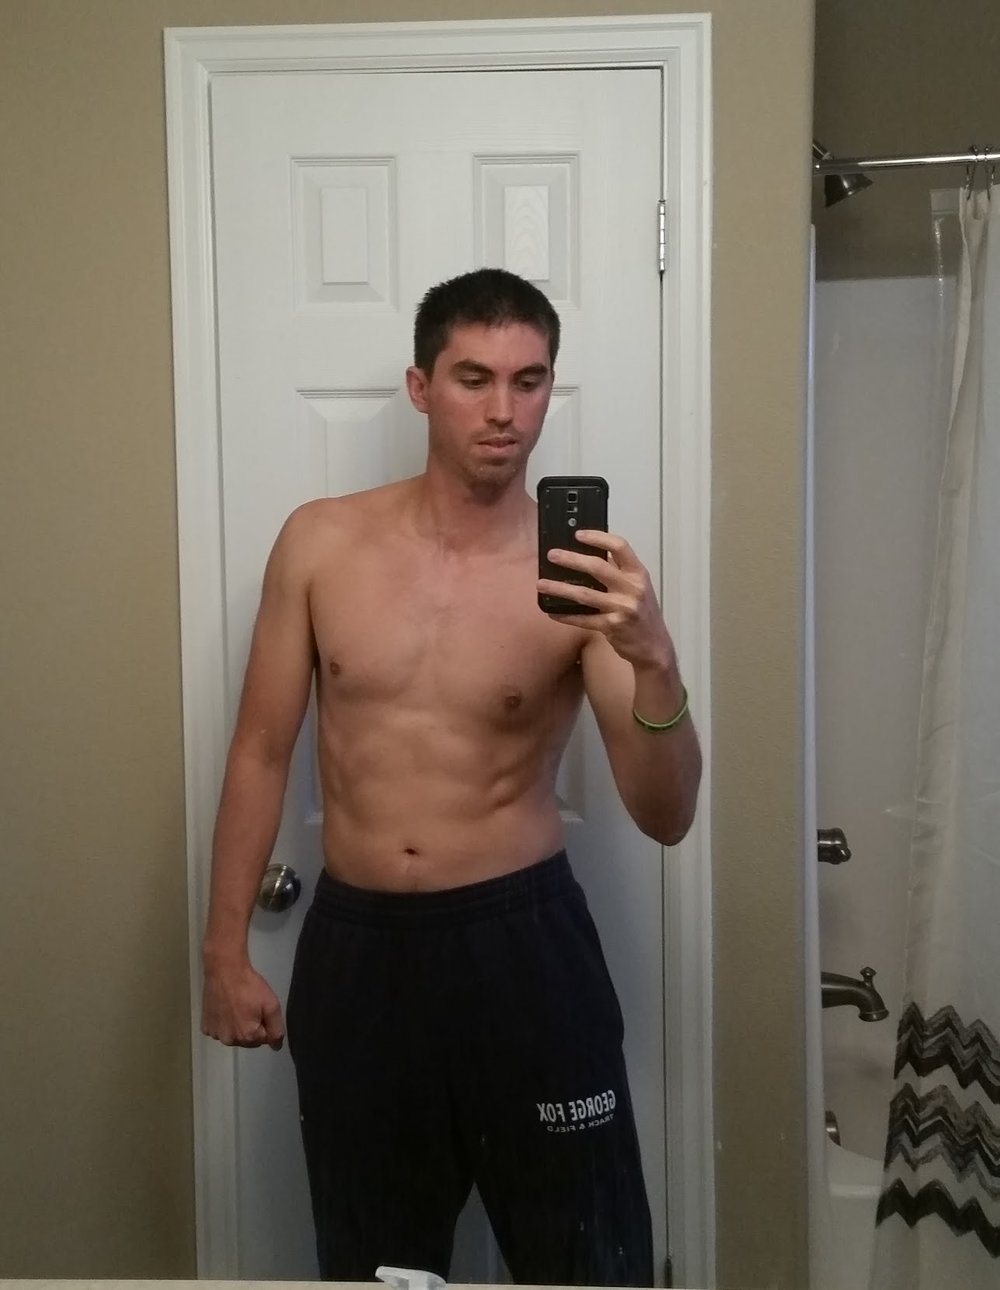 155 pounds, 9% body fat. That is 141.05 lbs of lean tissue. 7 pounds less weight, 9 pounds more muscle.